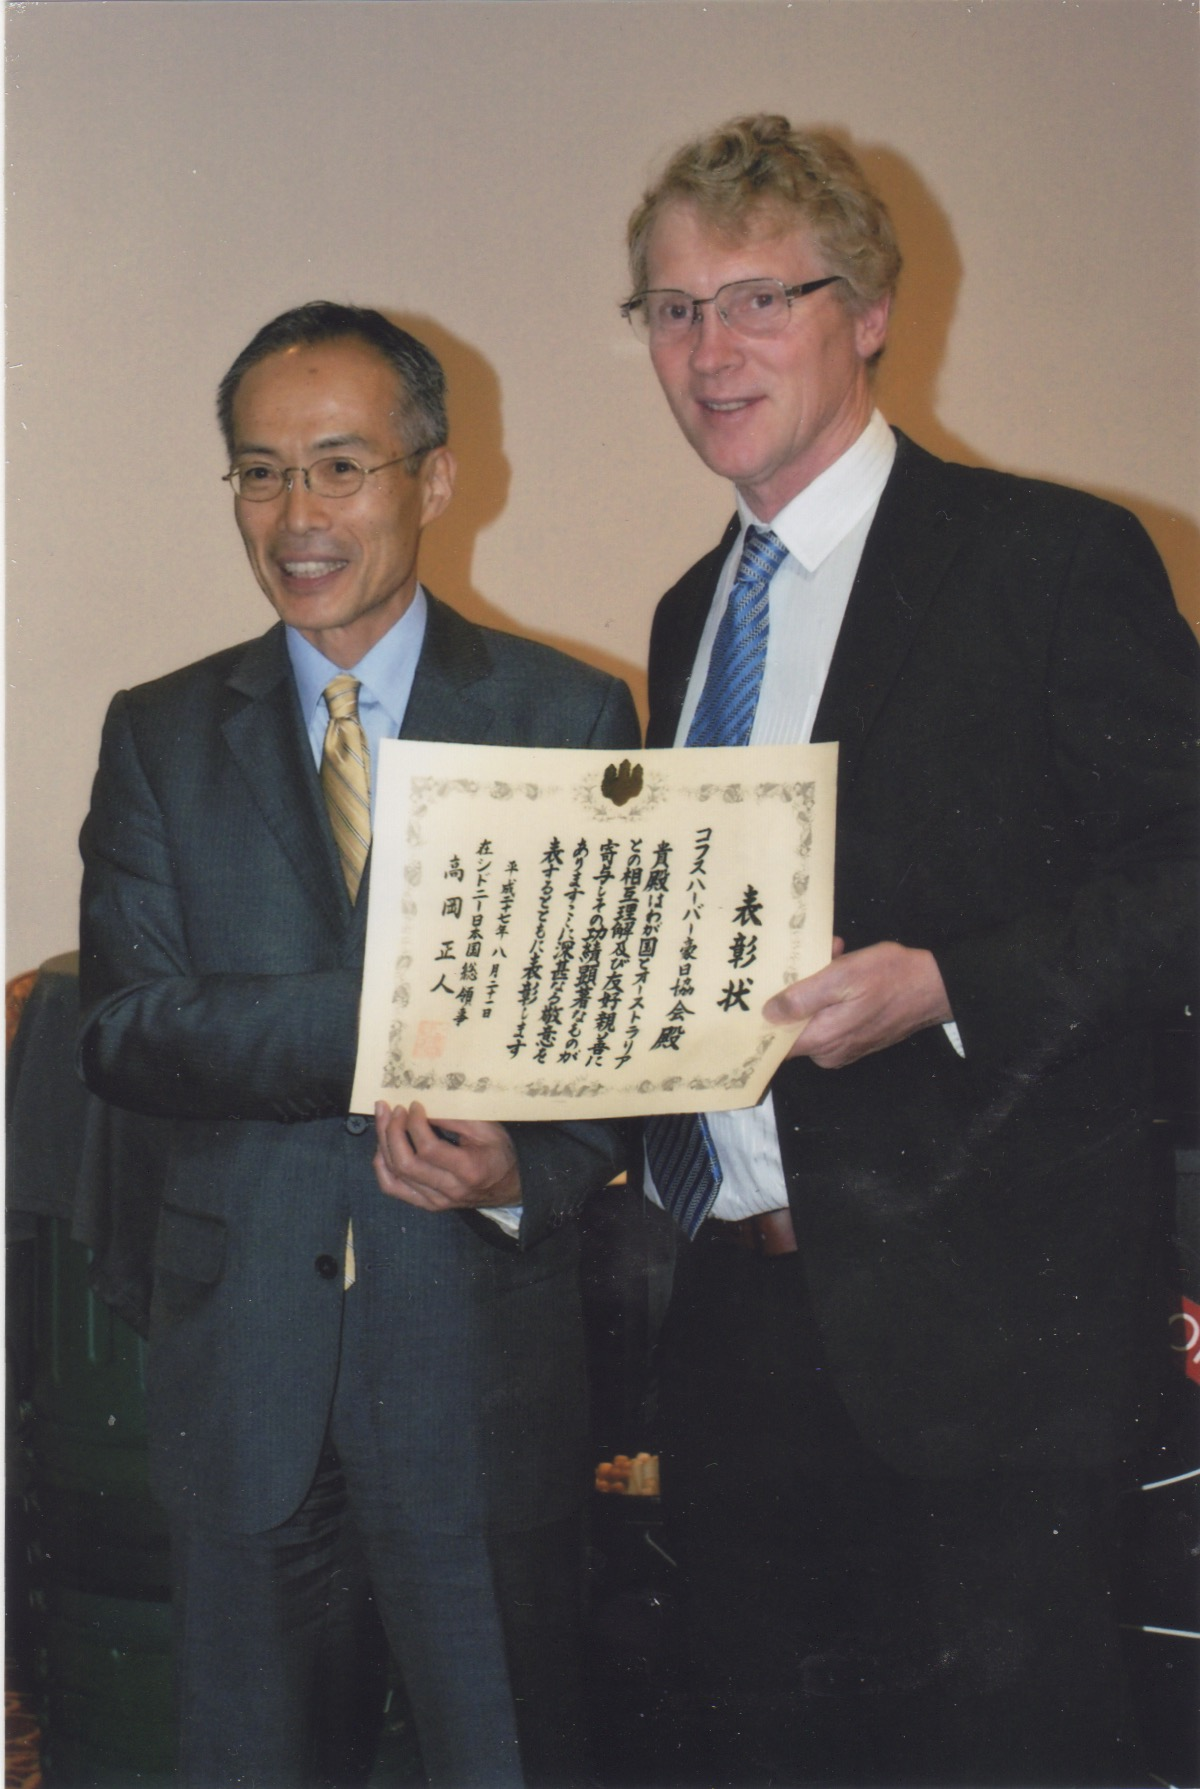 Mr.Takaoka, Consul General and Mr.Degens, the President of the Society.